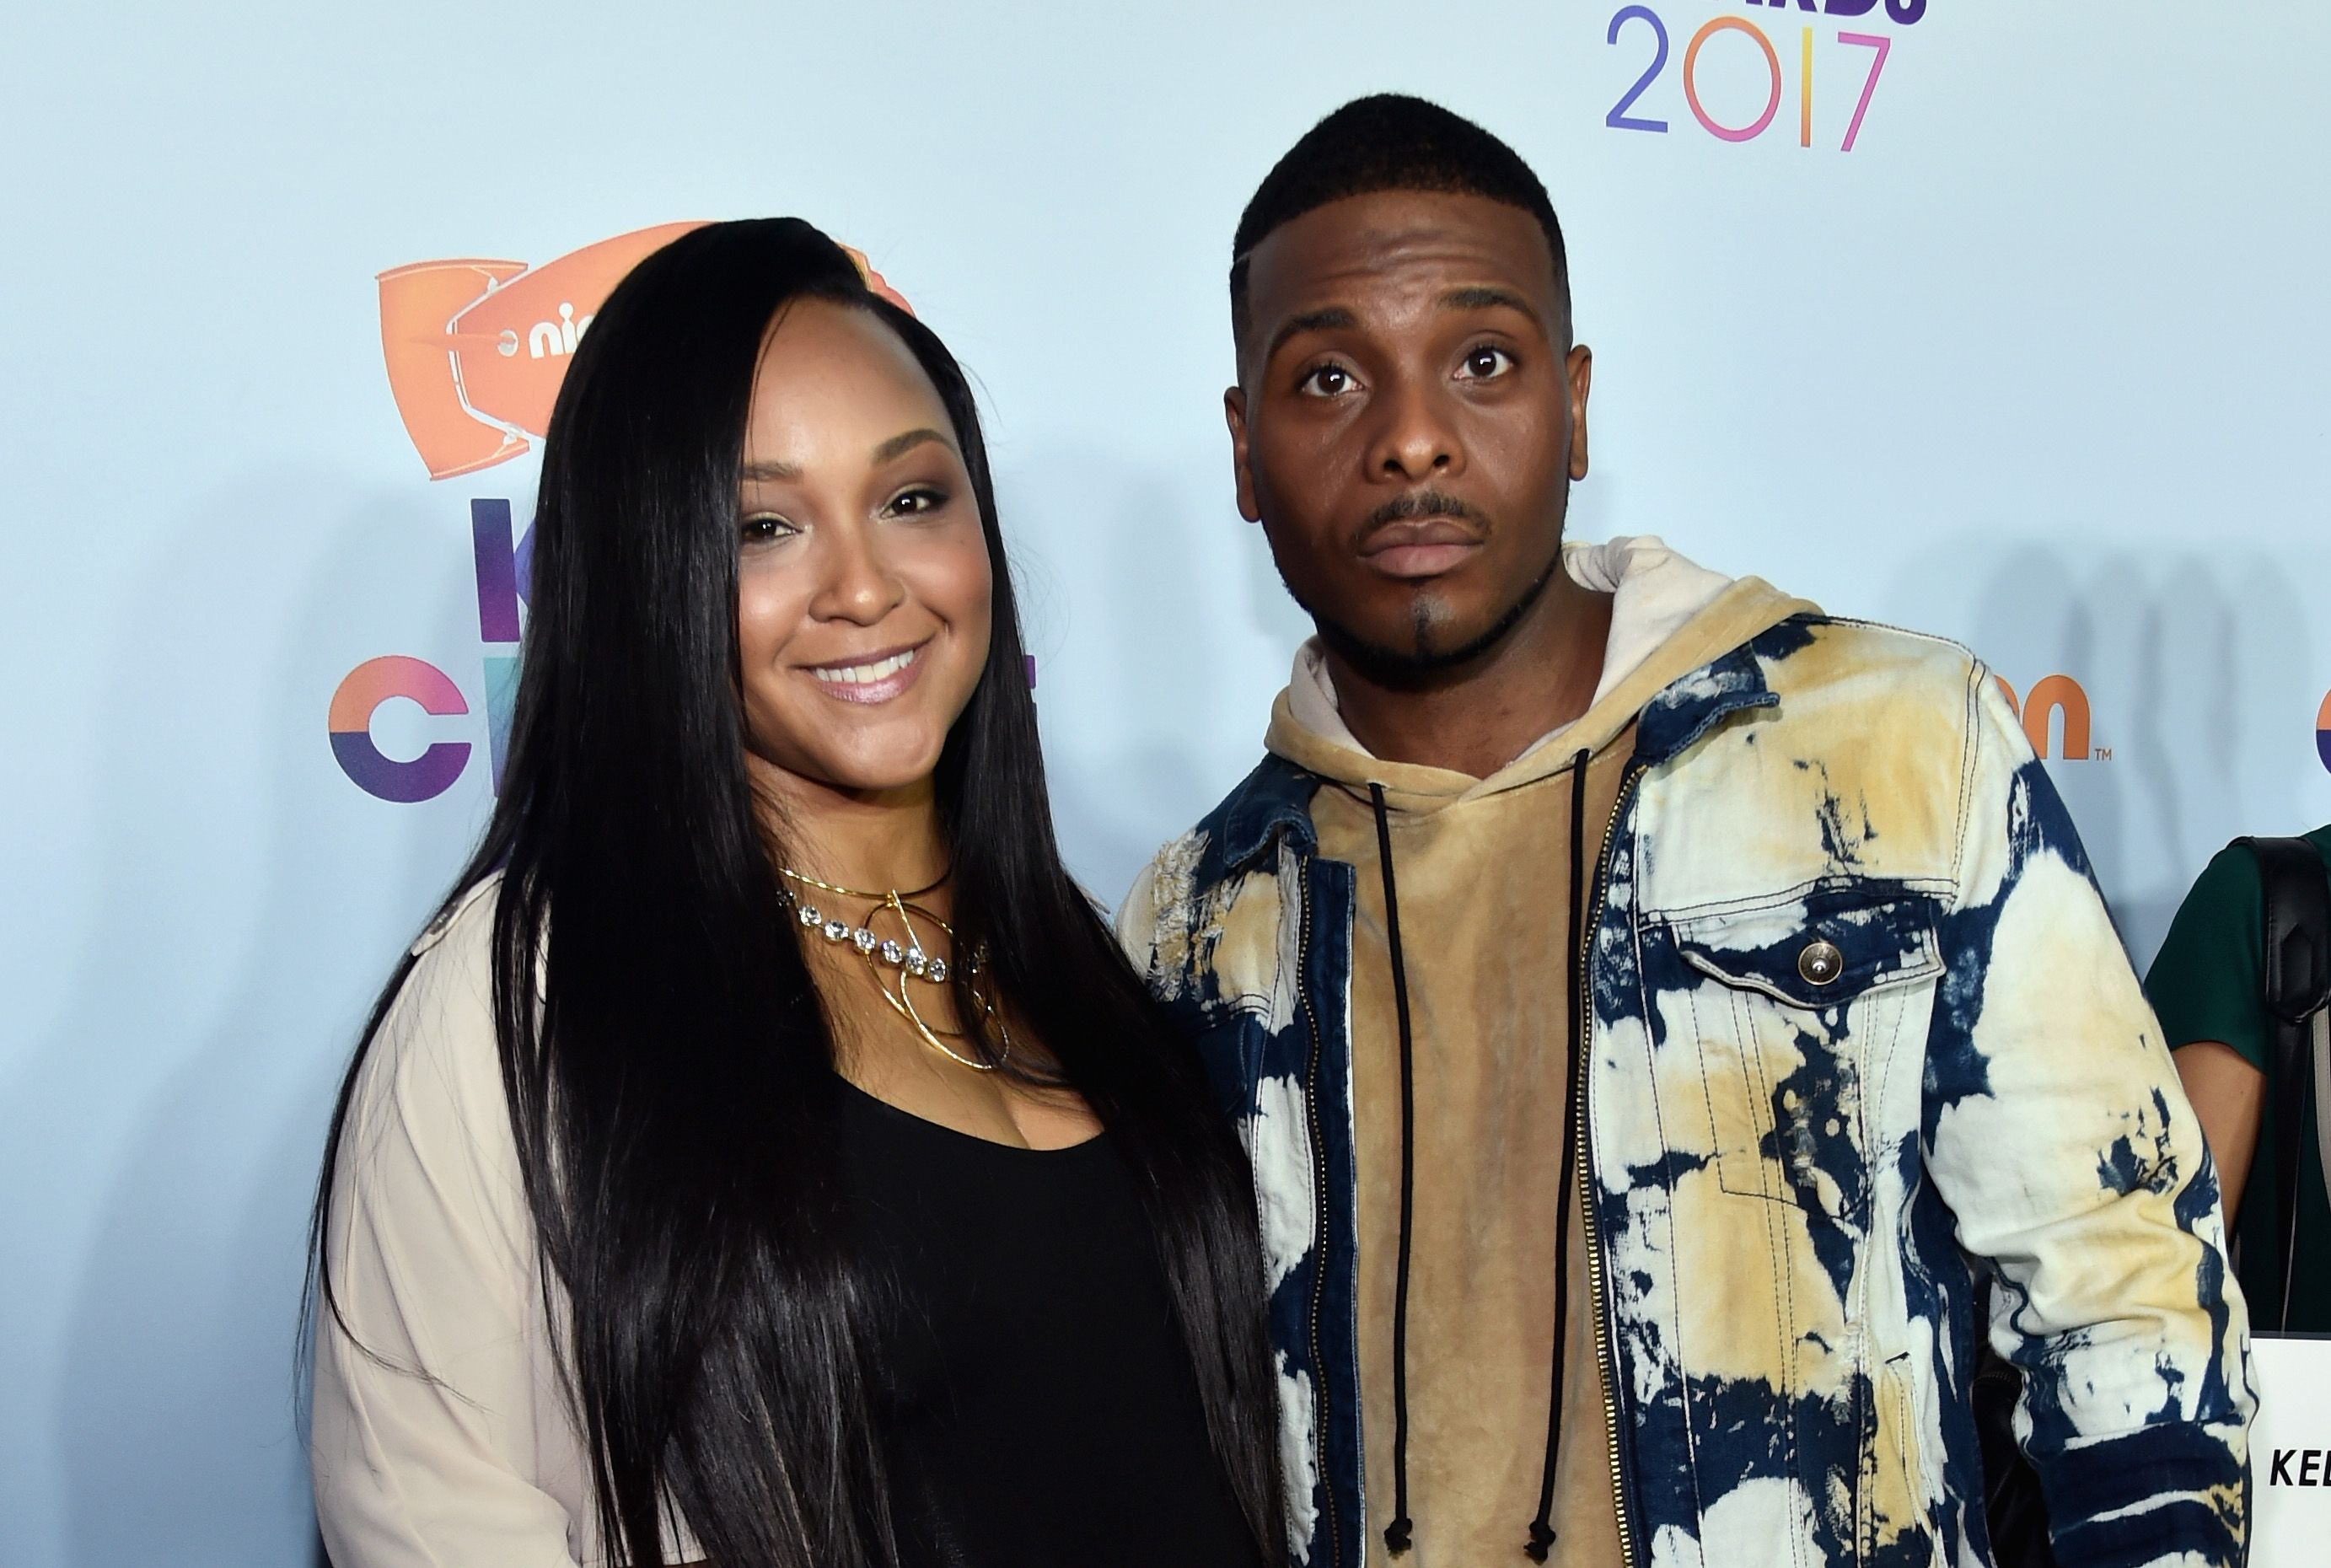 Asia Lee and Kel Mitchell at Nickelodeon's 2017 Kids' Choice Awards at USC Galen Center on March 11, 2017 | Photo: Getty Images